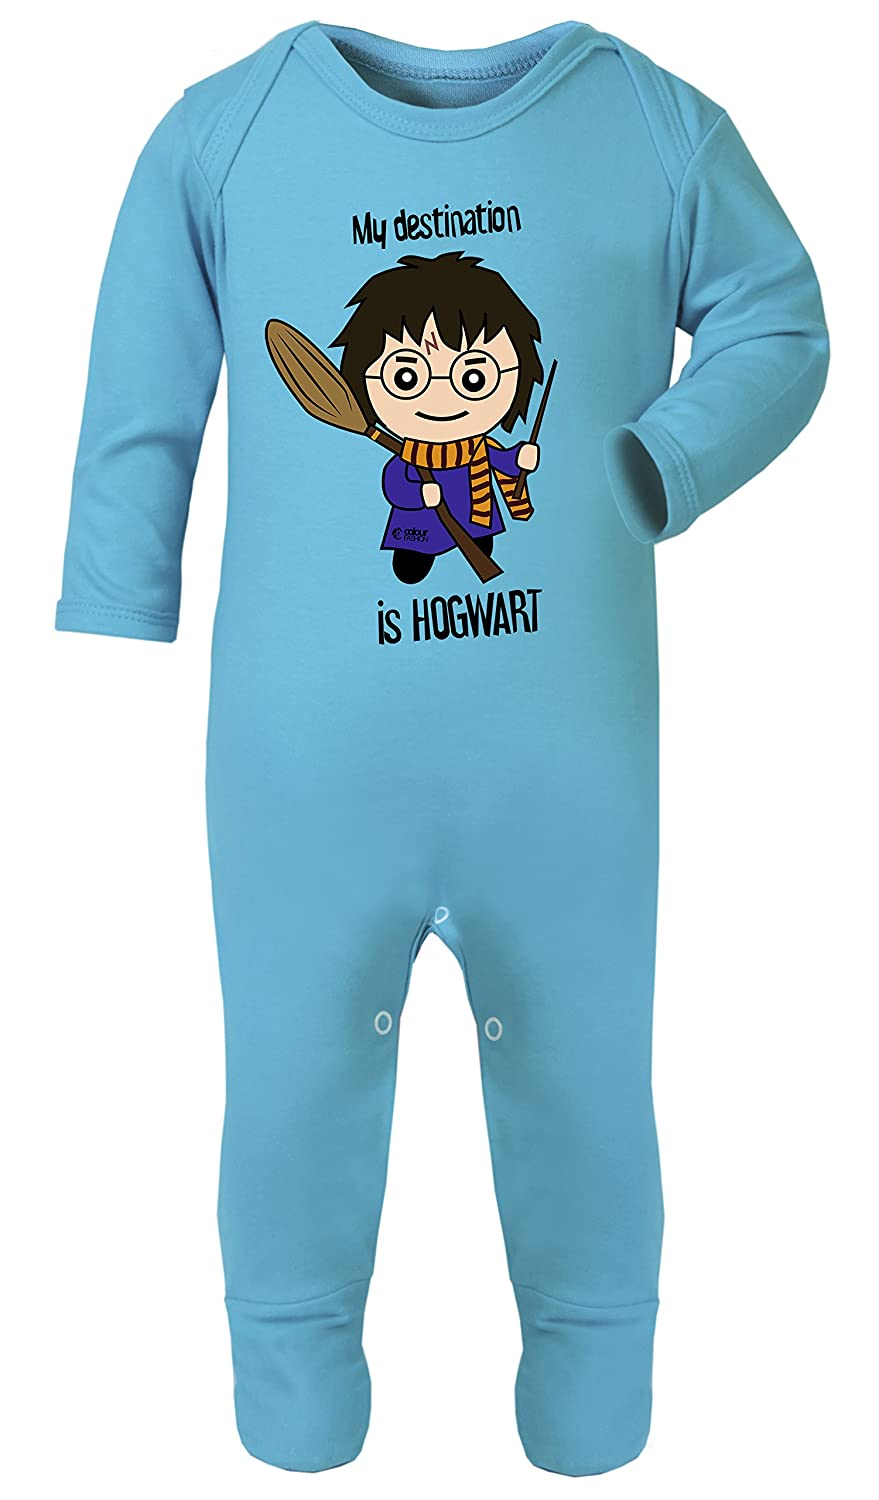 Colour Fashion Harry Potter My Destination is Hogwart Cute Print Footies Pajamas Hypoallergenic